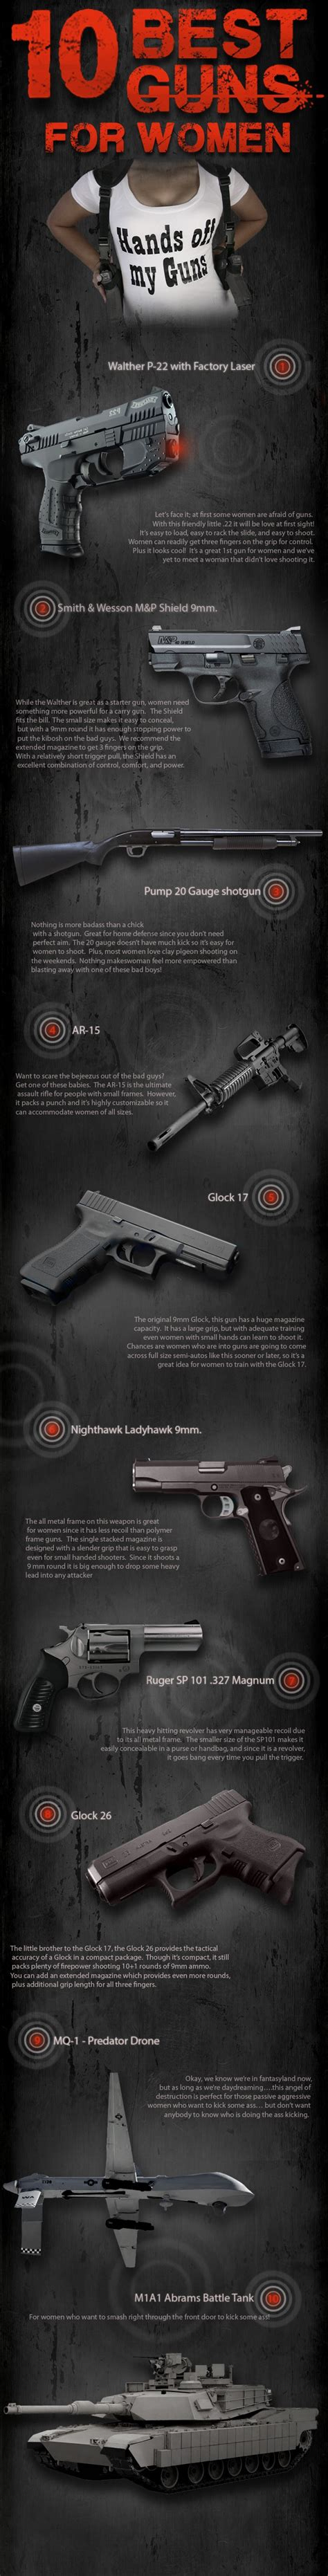 best for protection 10 best armour guns for protection safety infographics